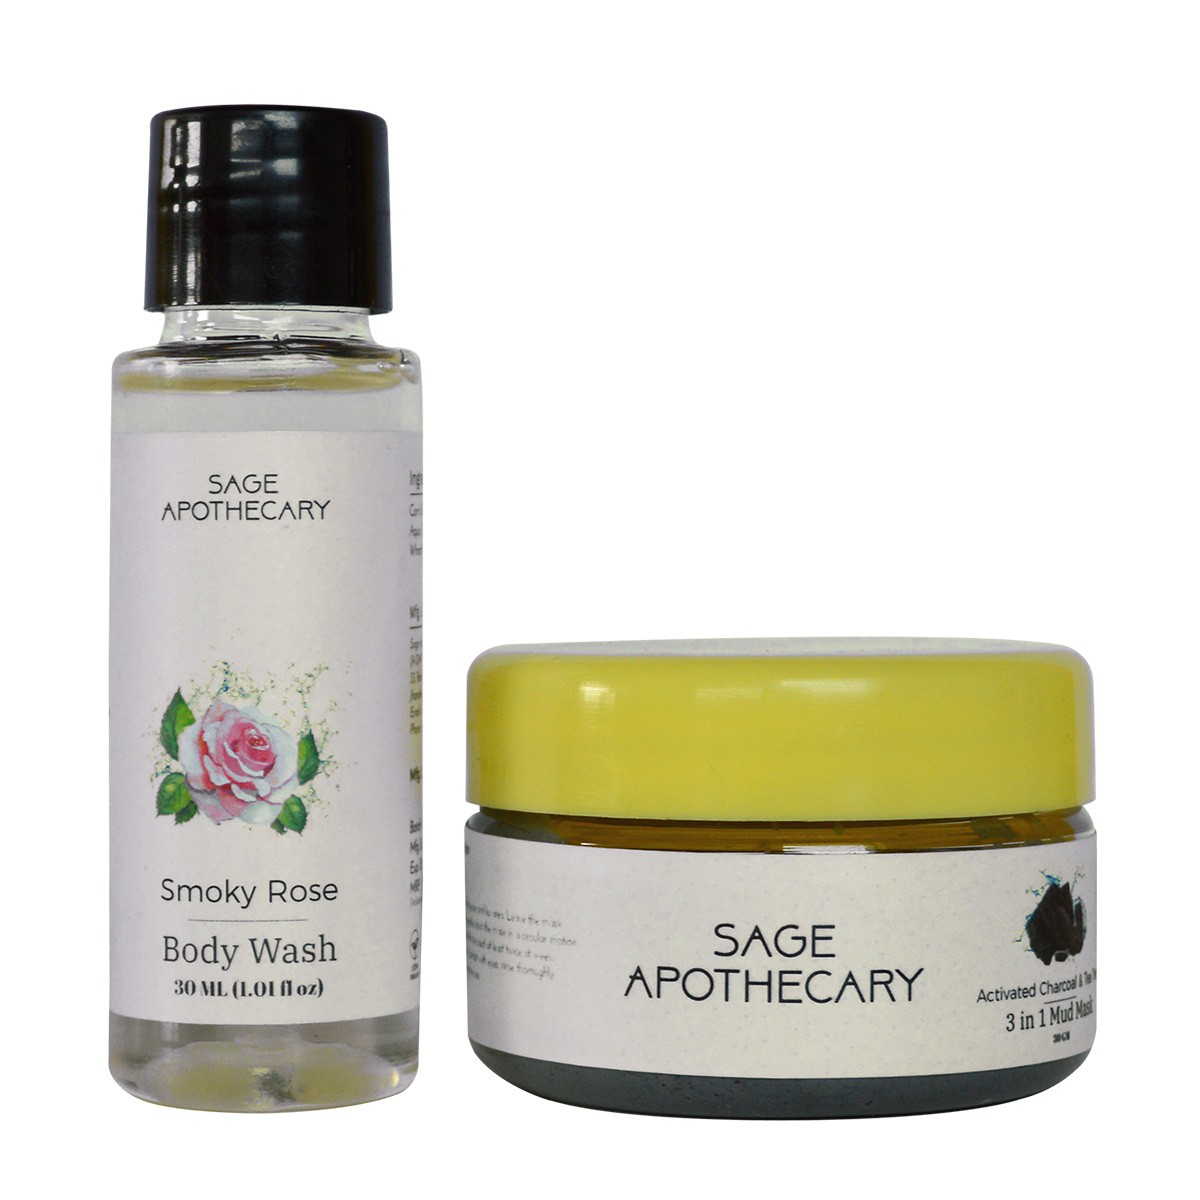 Smoky Rose Body Wash | MRP: 115 Charcoal Mud Mask | MRP: Rs. 233